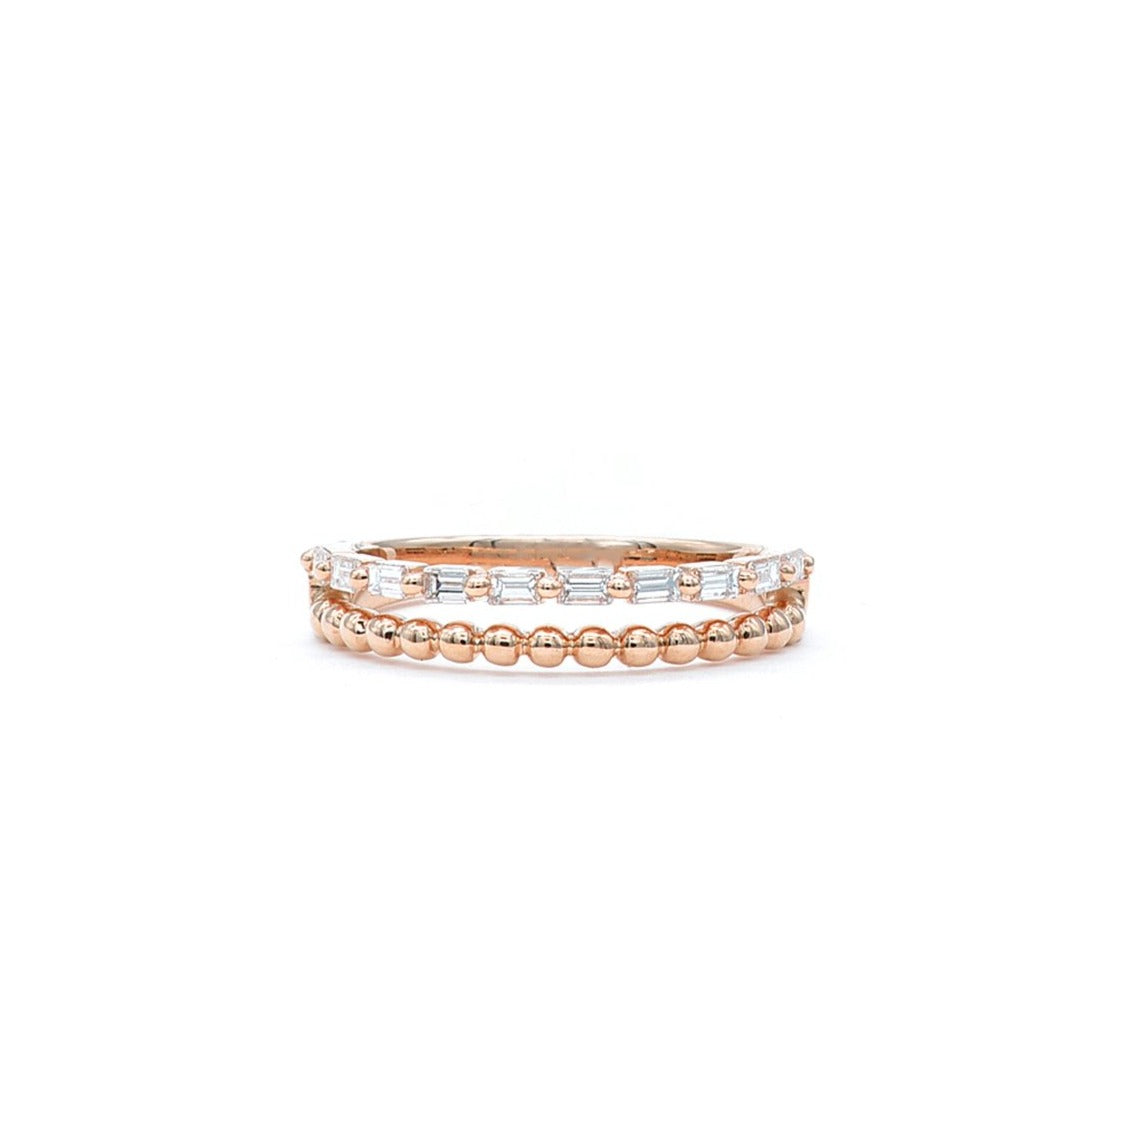 Double band in rose gold - Lesley Ann Jewels